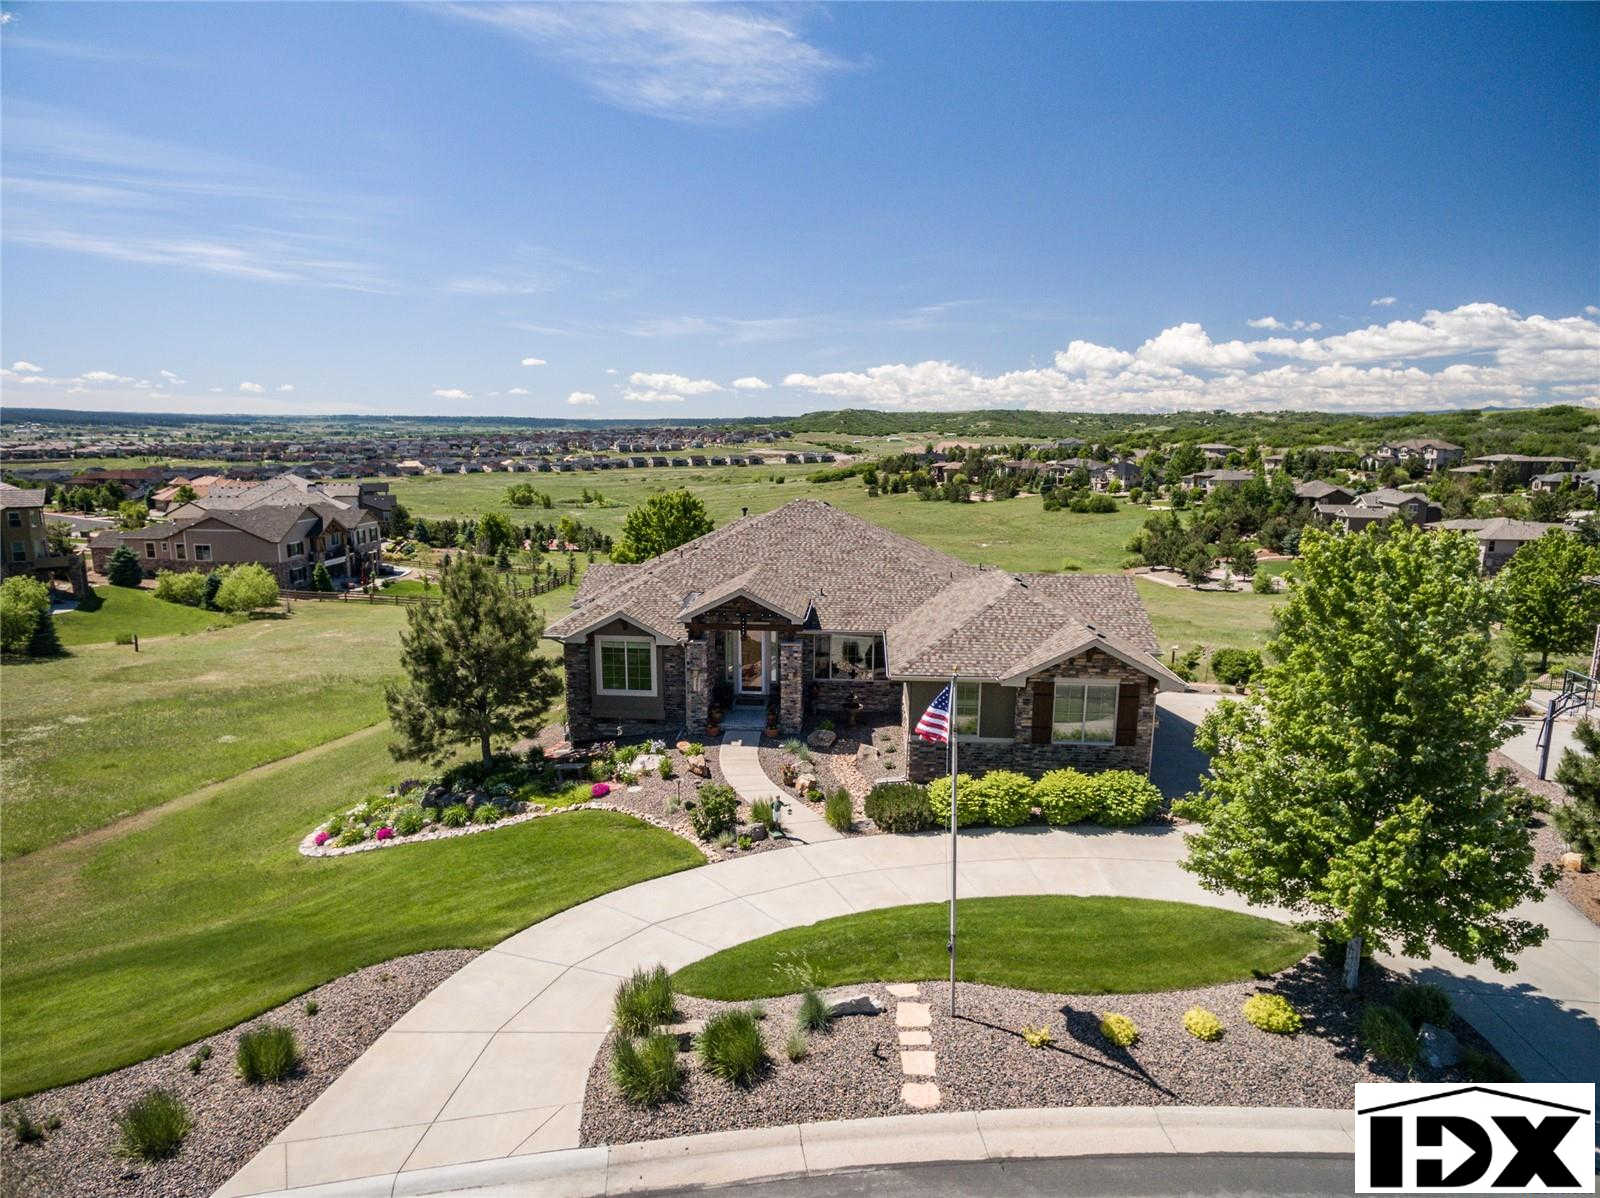 4505 Carefree Trail, Parker, CO 80134 now has a new price of $925,000!